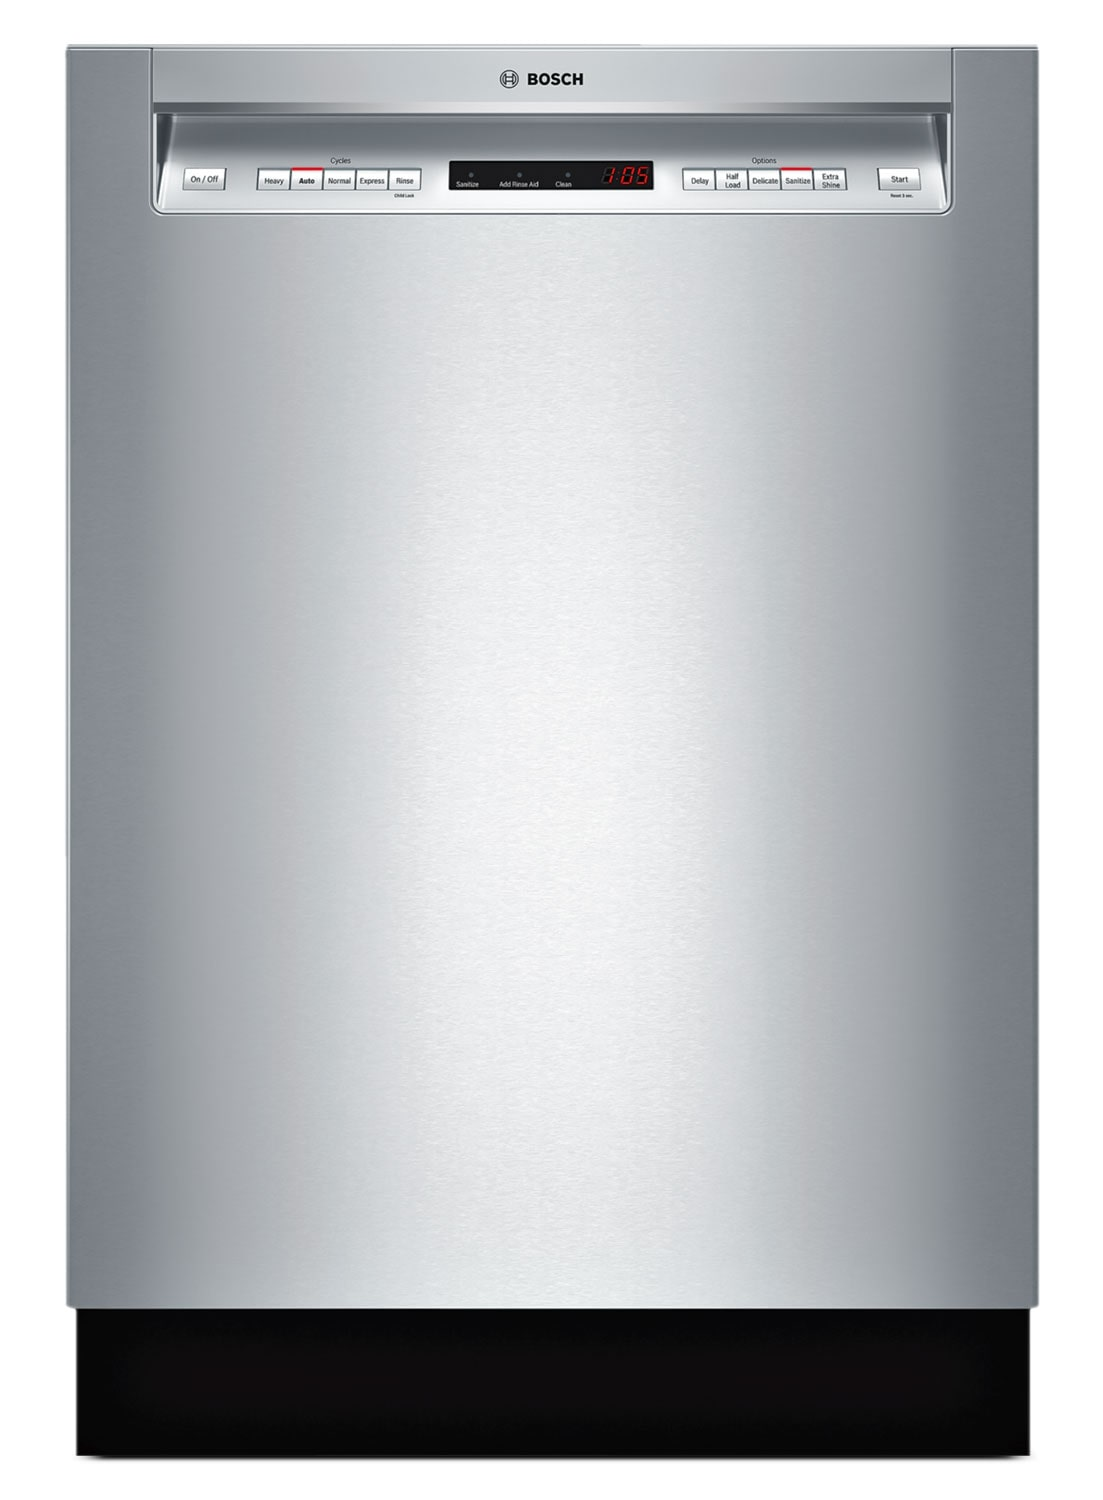 "Clean-Up - Bosch Stainless Steel 24"" Dishwasher - SHE65T55UC"